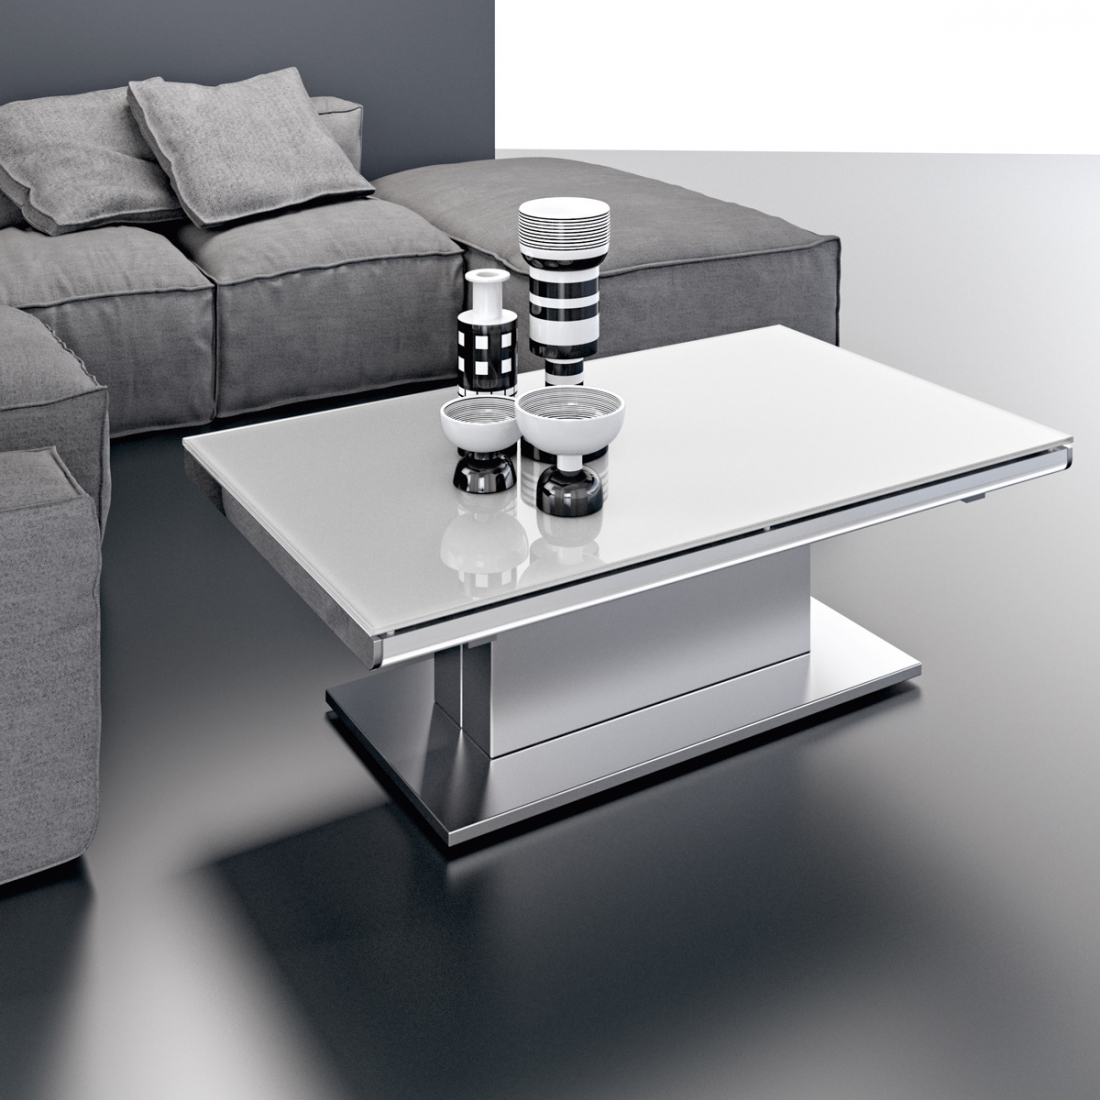 Table basse modulable design ares glass inox - Table basse pied inox ...